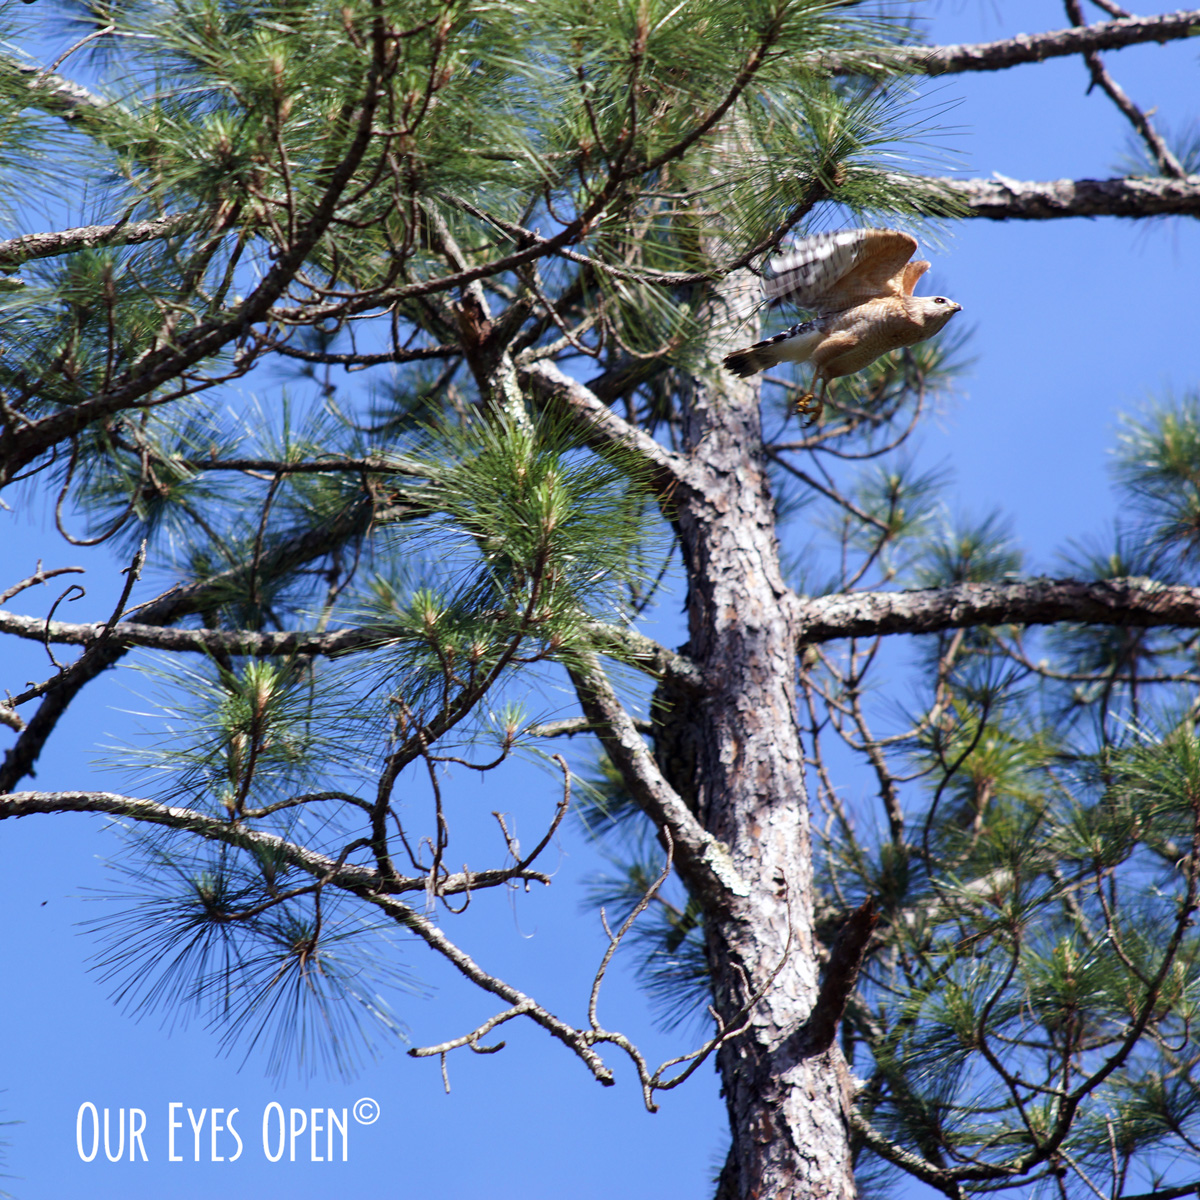 Red-shouldered Hawk taking flight from a pine tree at St. Marks Wildlife Refuge.